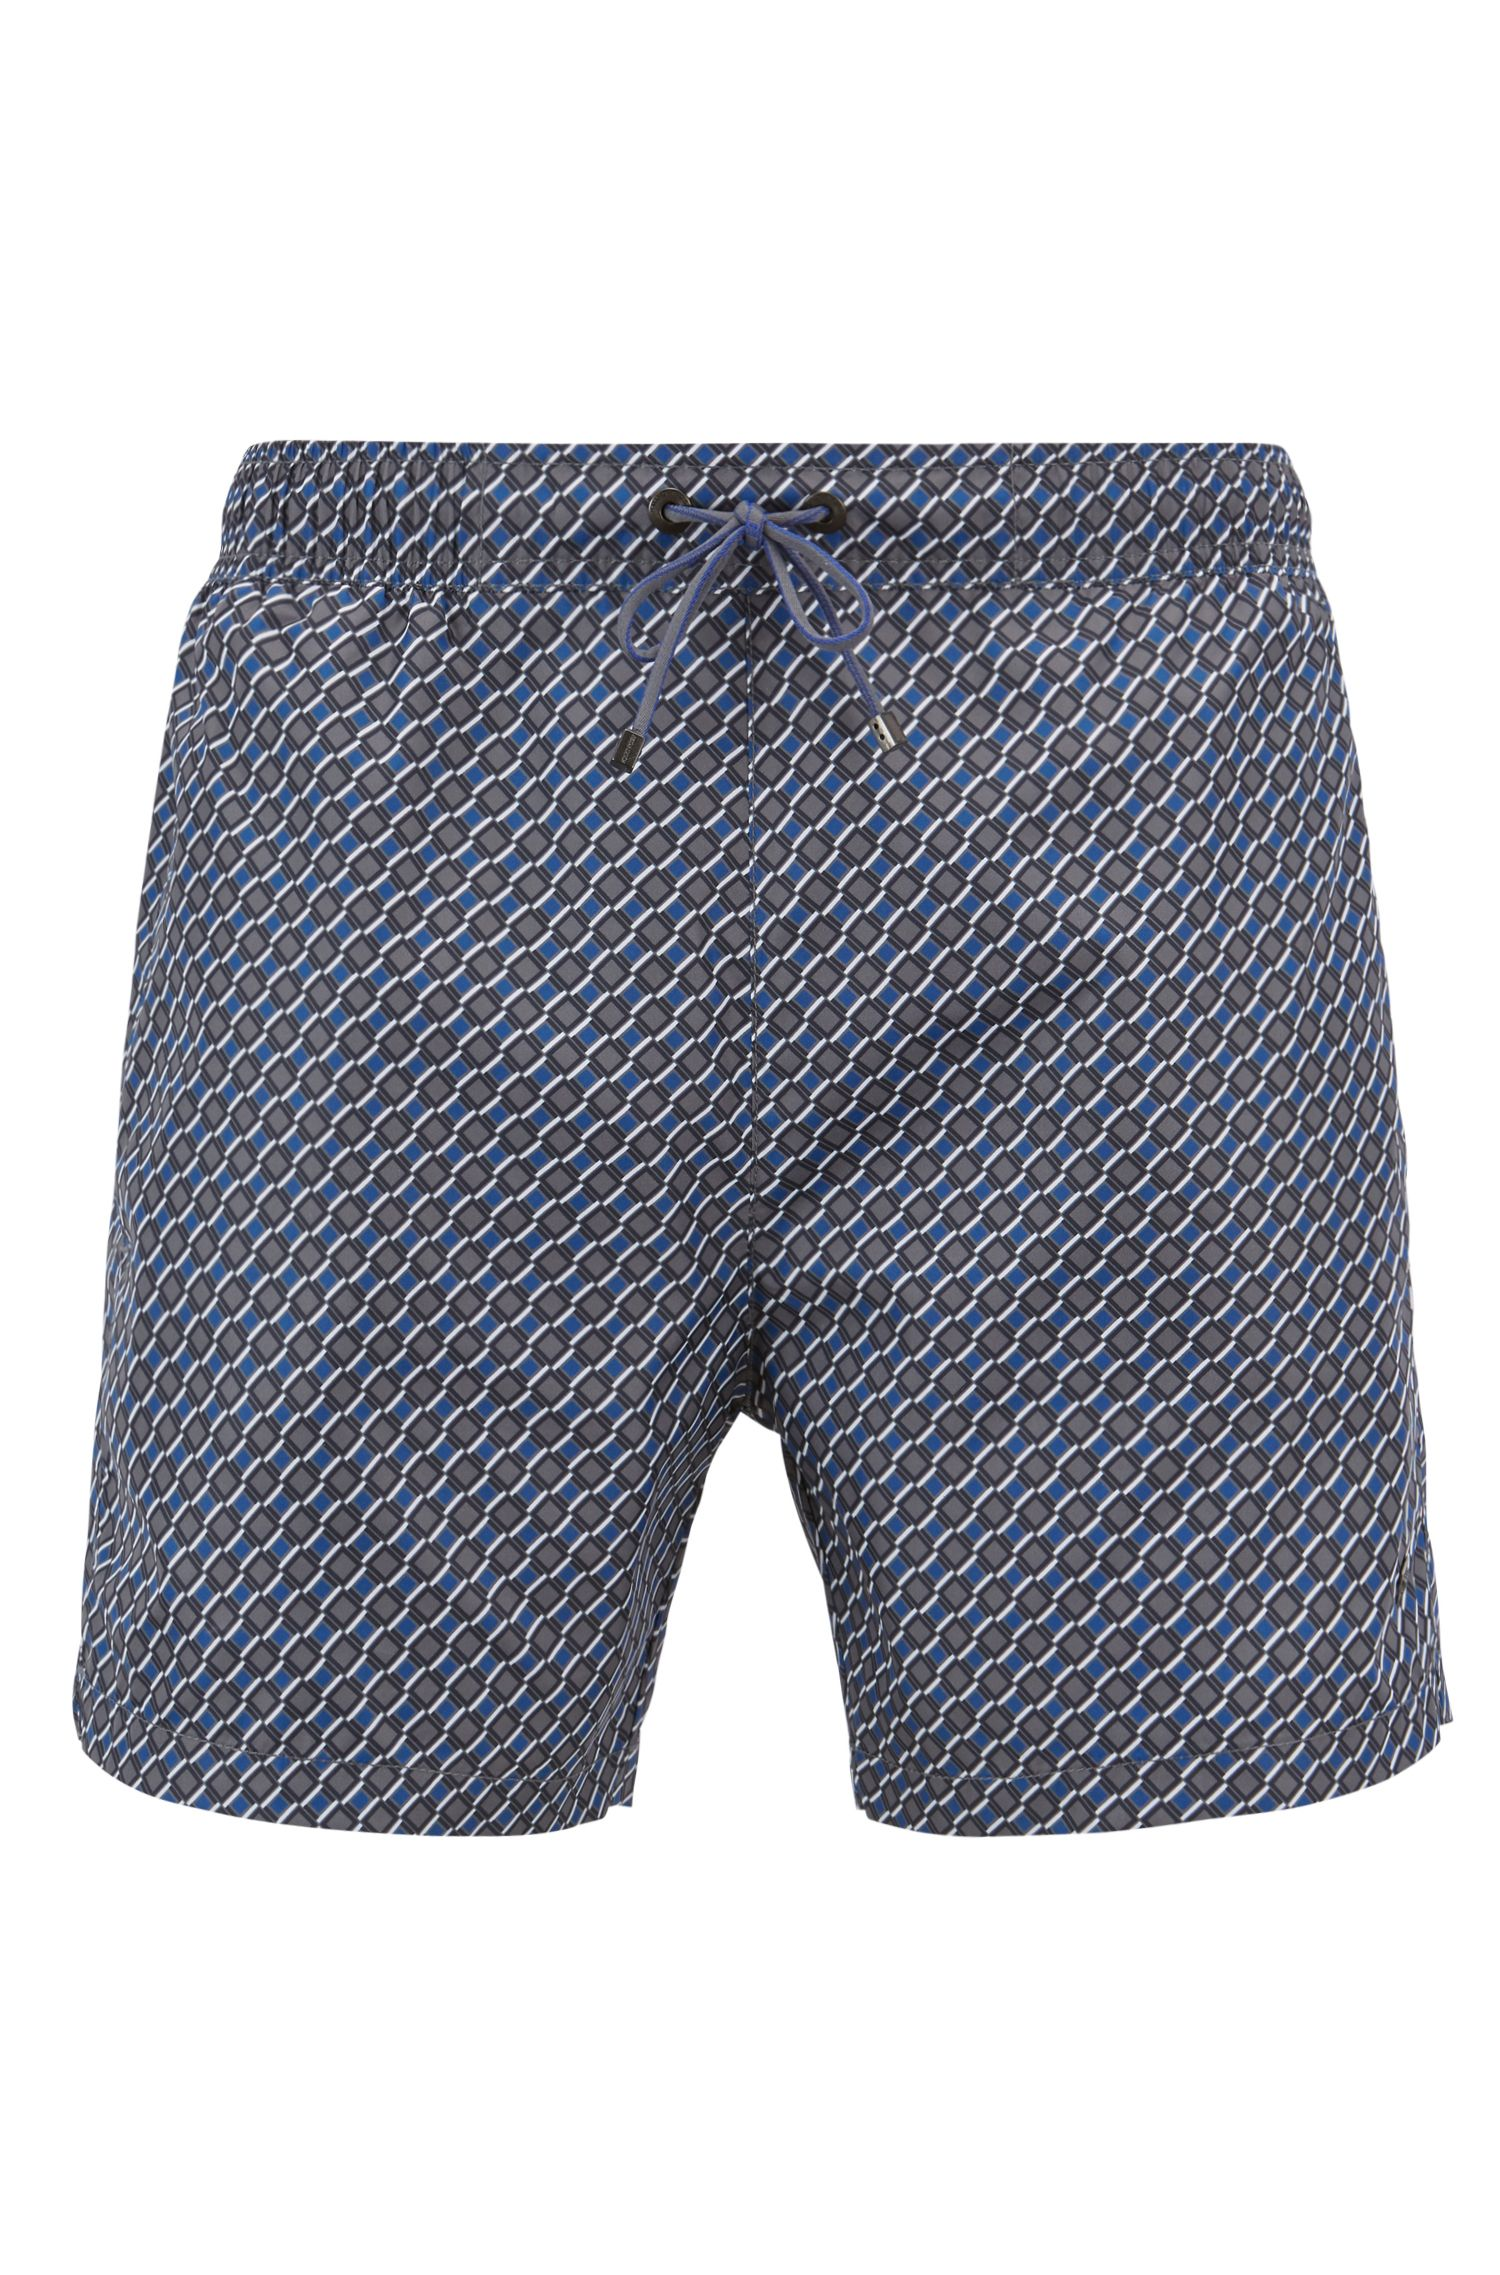 Lightweight patterned swim shorts with elastic waistband, Open Blue